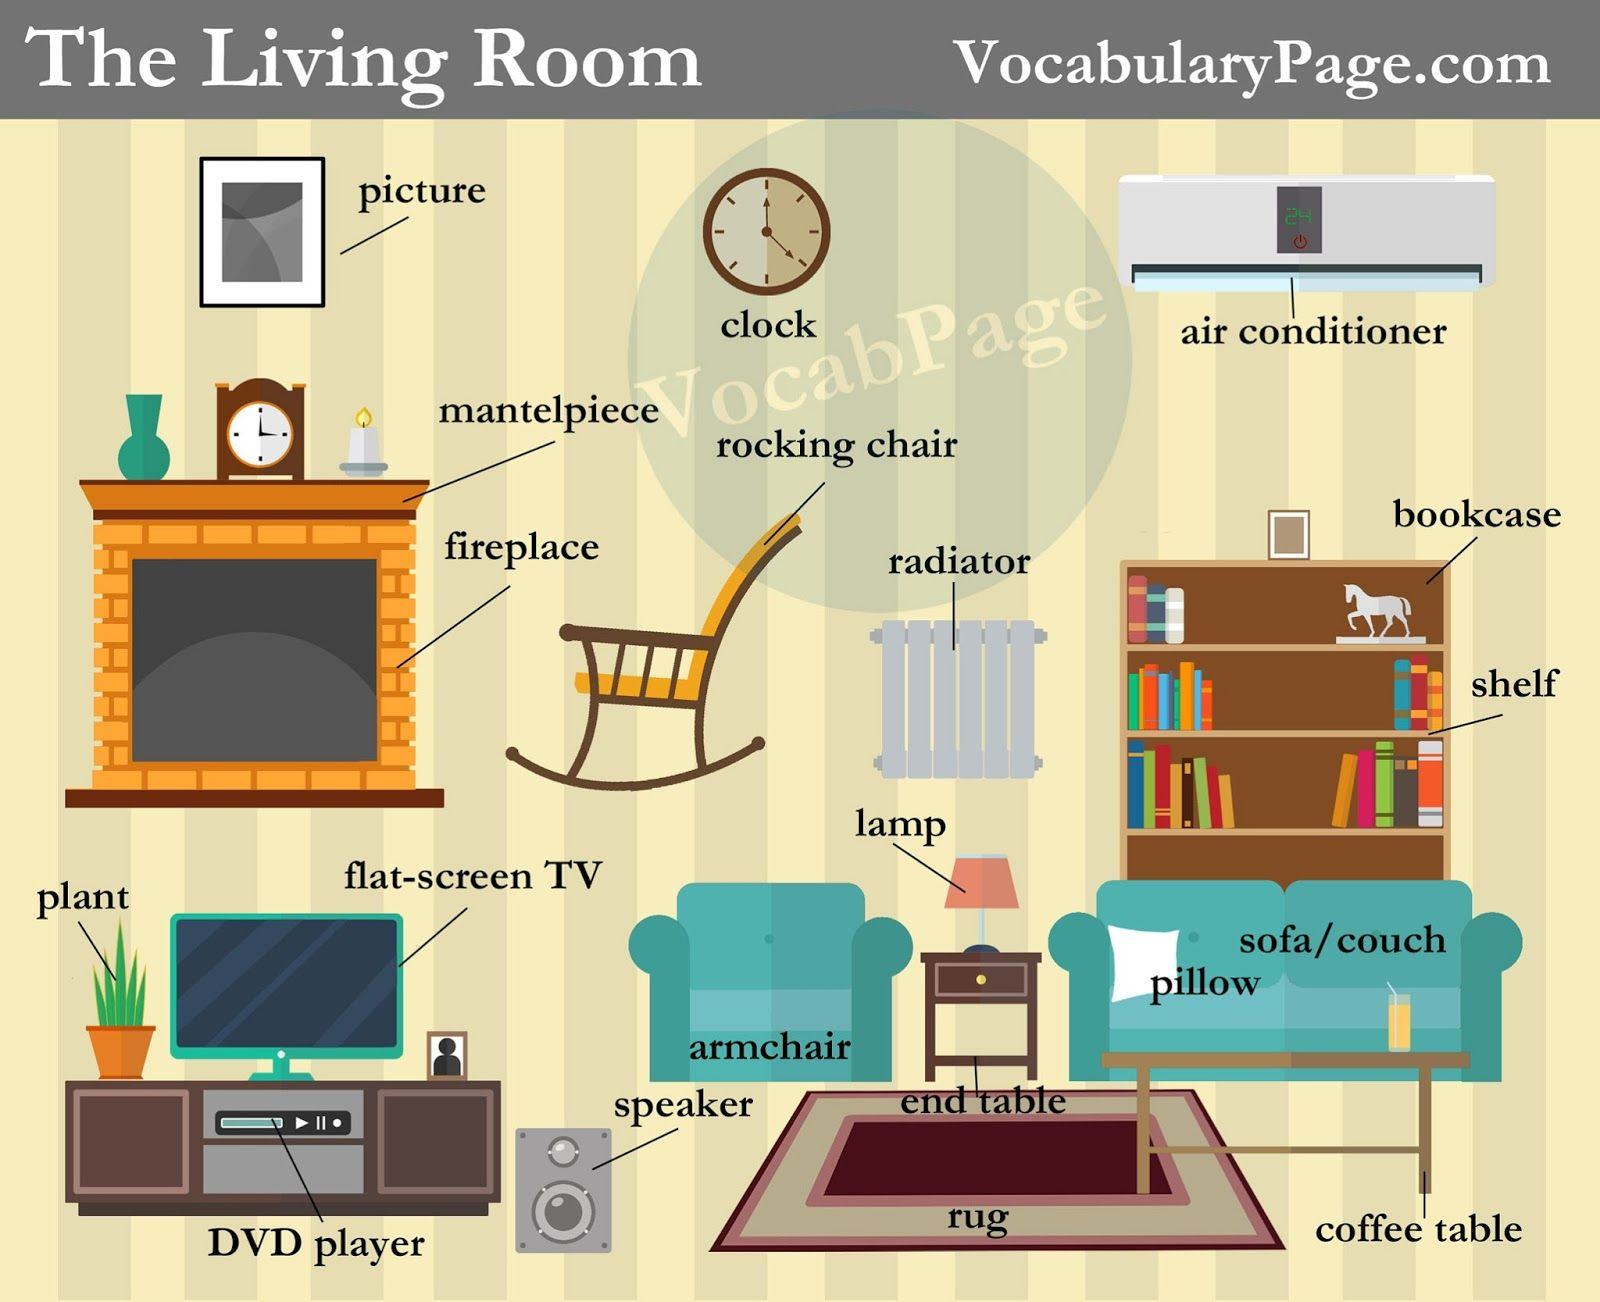 Living Room Vocabulary  Vocabulary, Living room objects, Learning